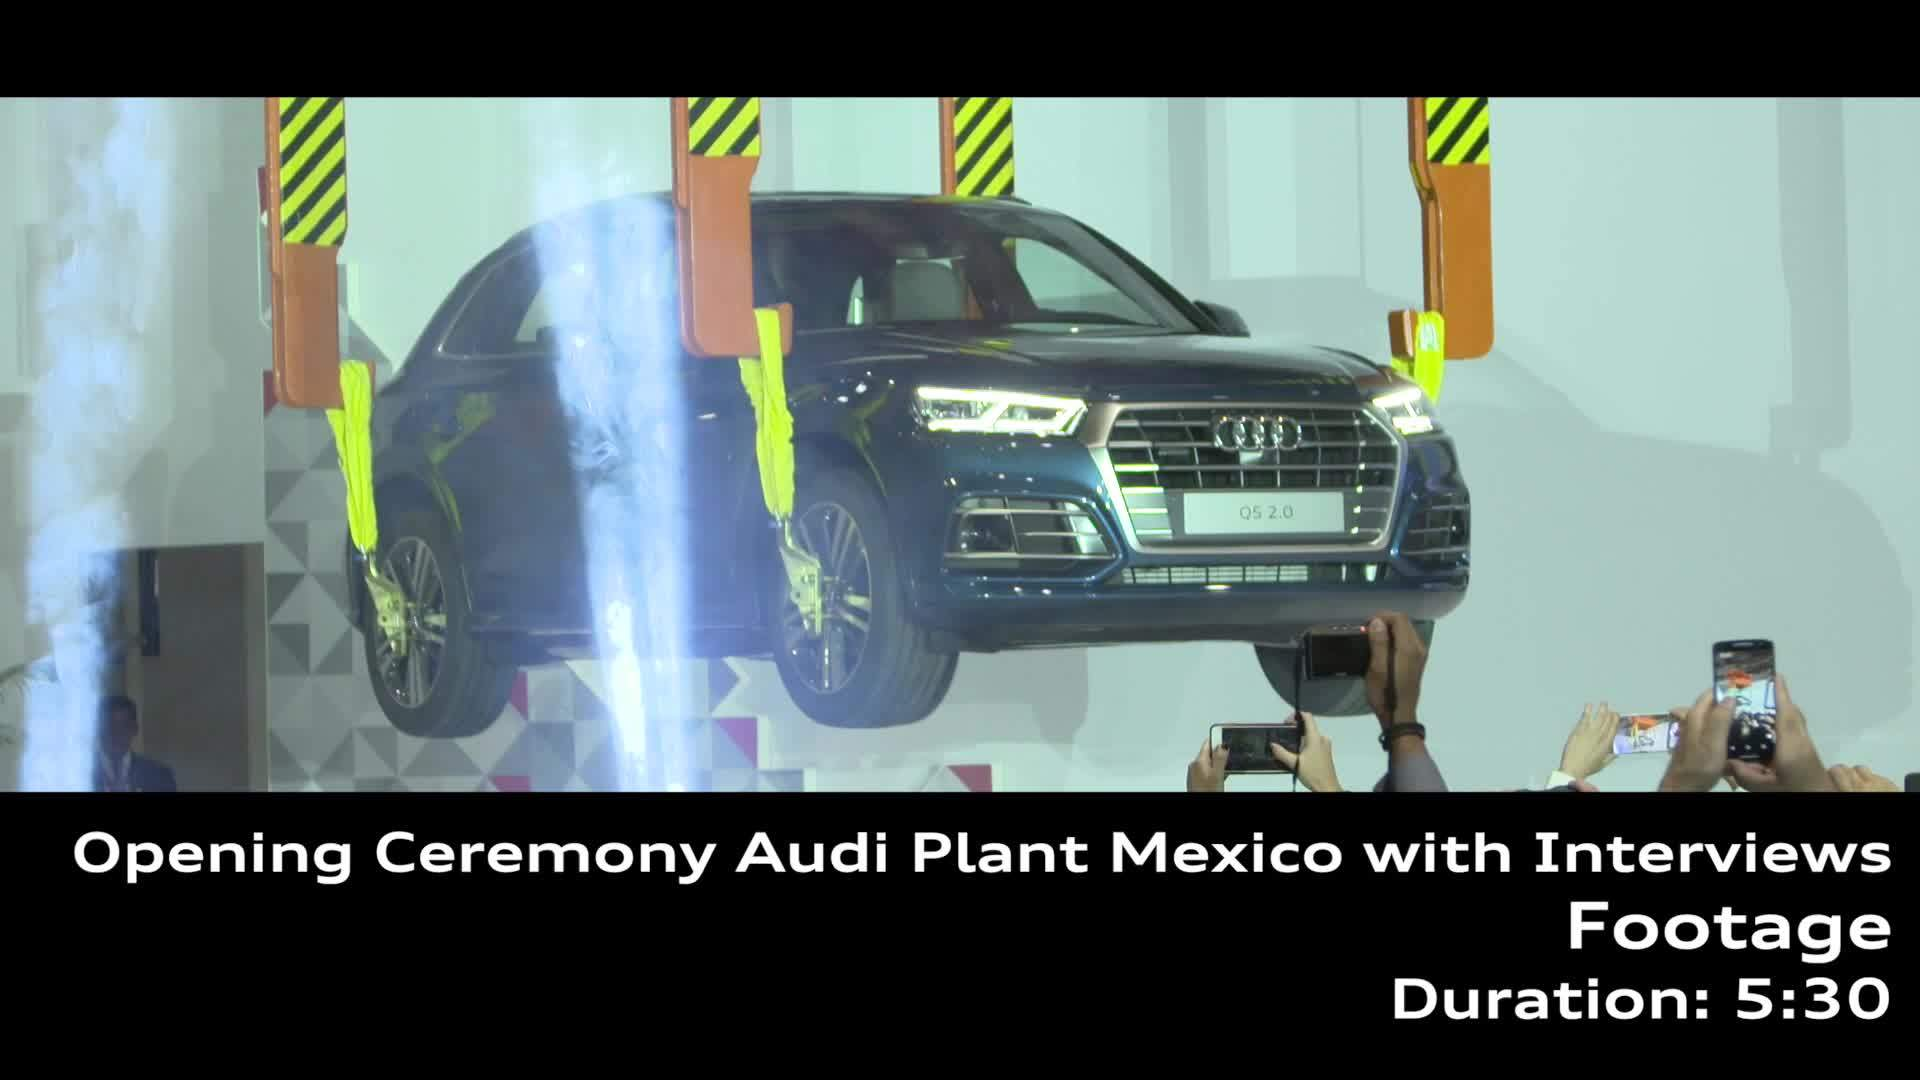 Opening of the new plant in Mexico - Footage